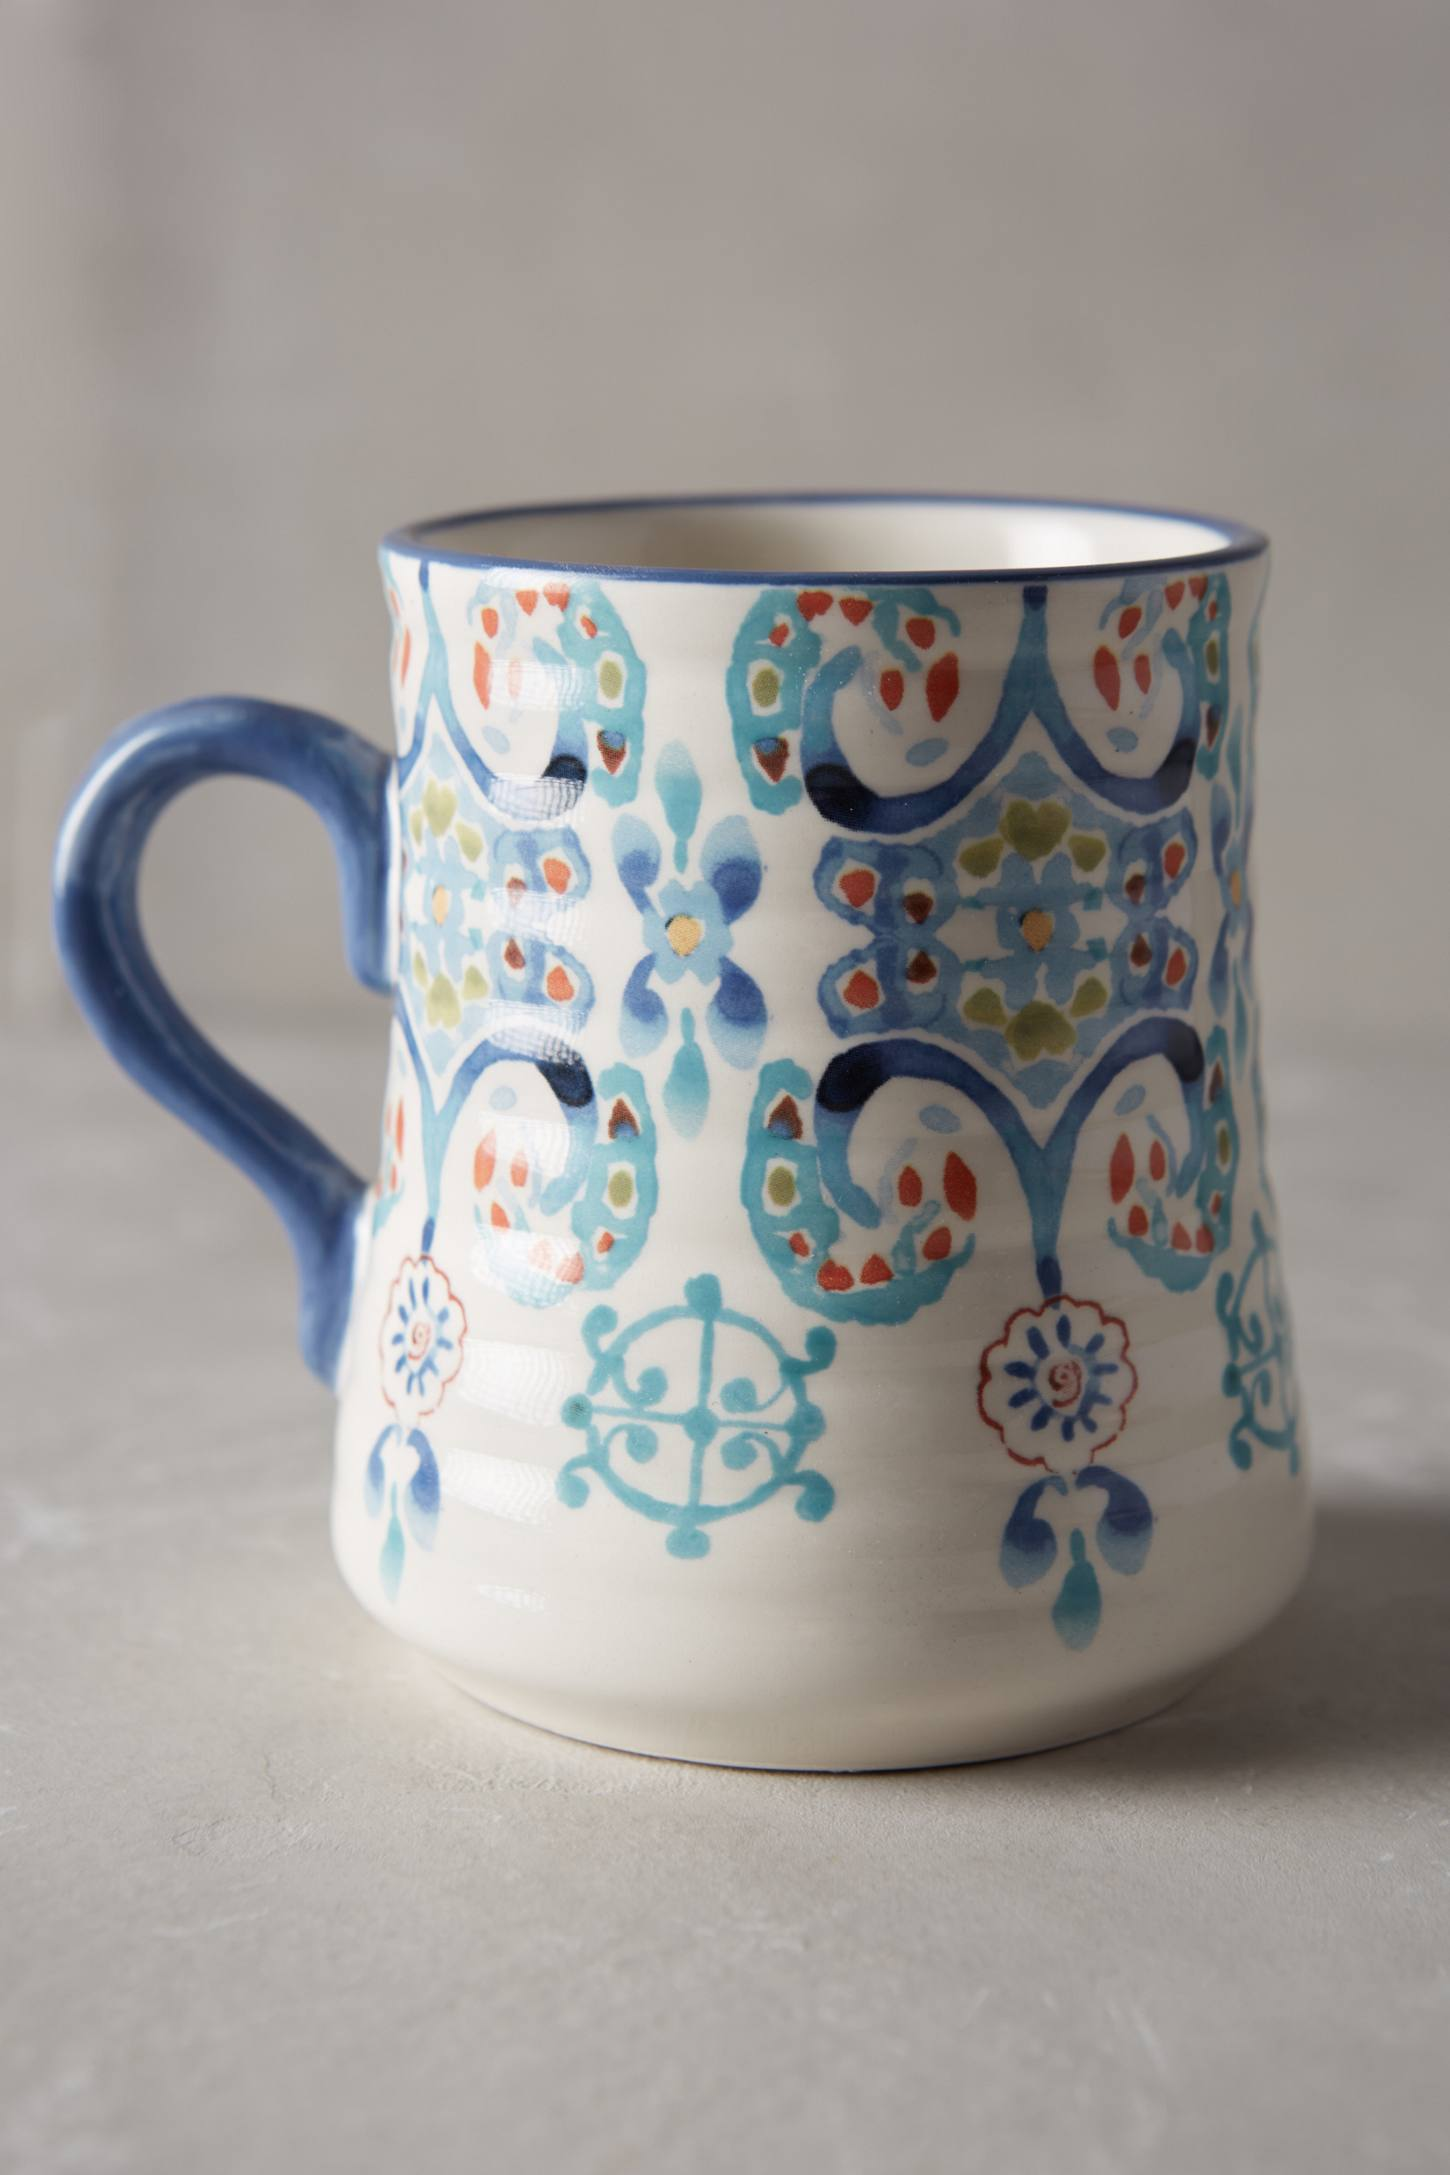 Slide View: 1: Swirled Symmetry Mug